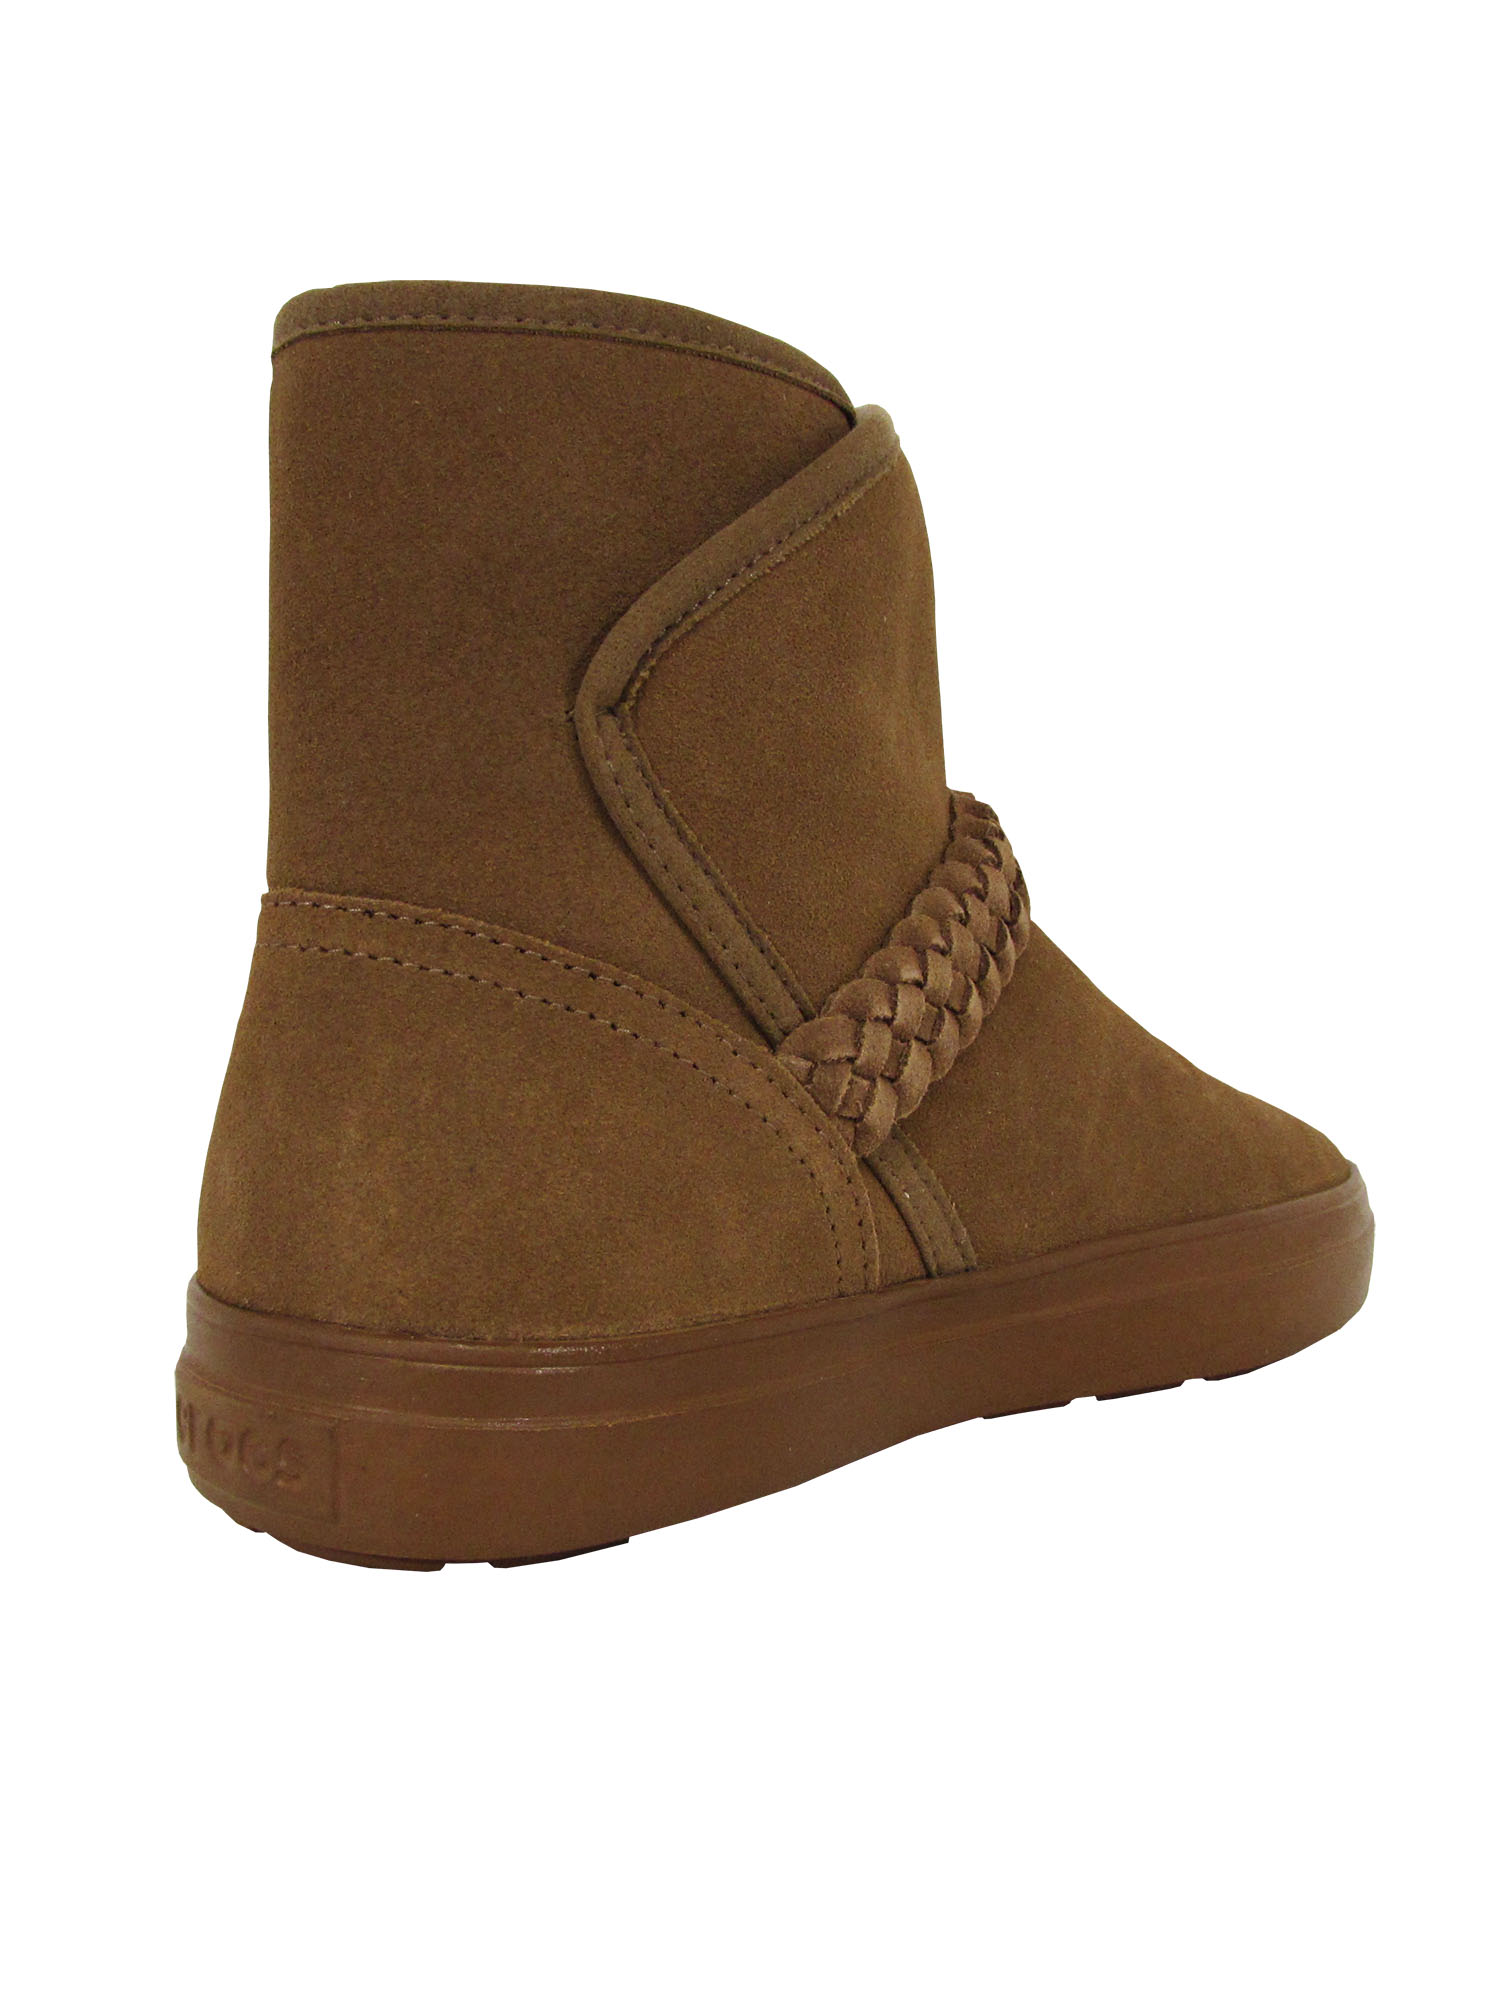 Crocs Womens LodgePoint Suede Bootie Shoes